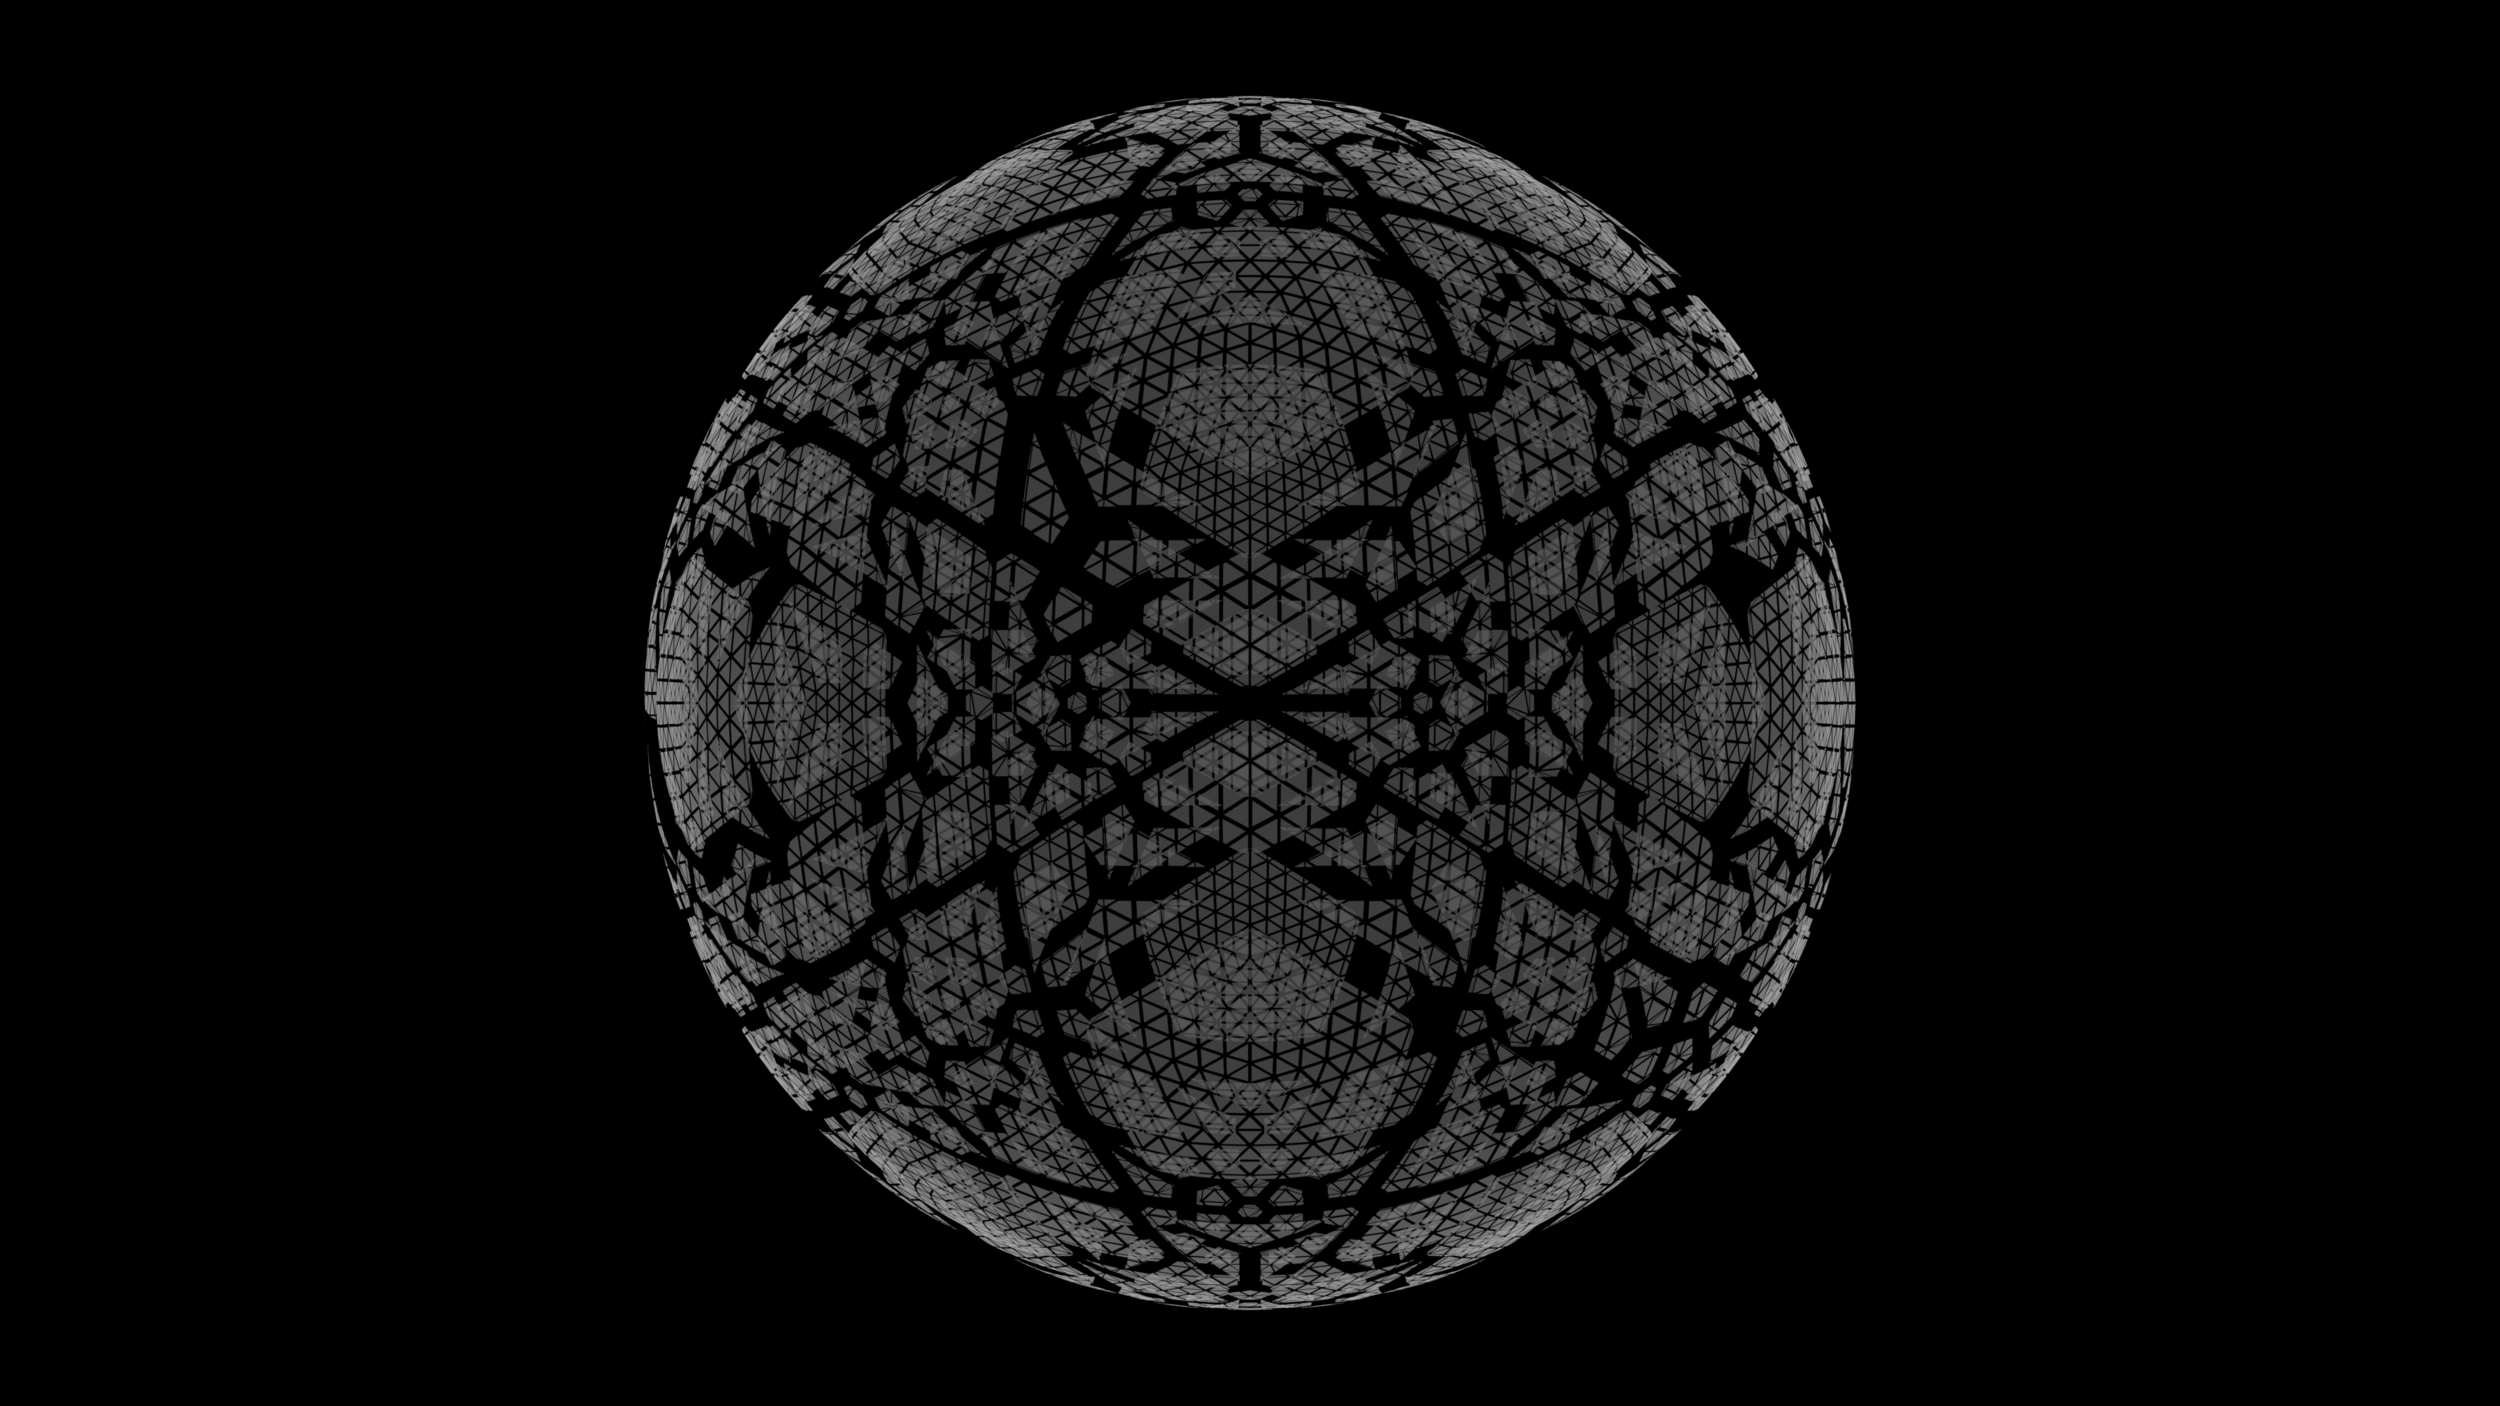 hex sphere fracture 05.png